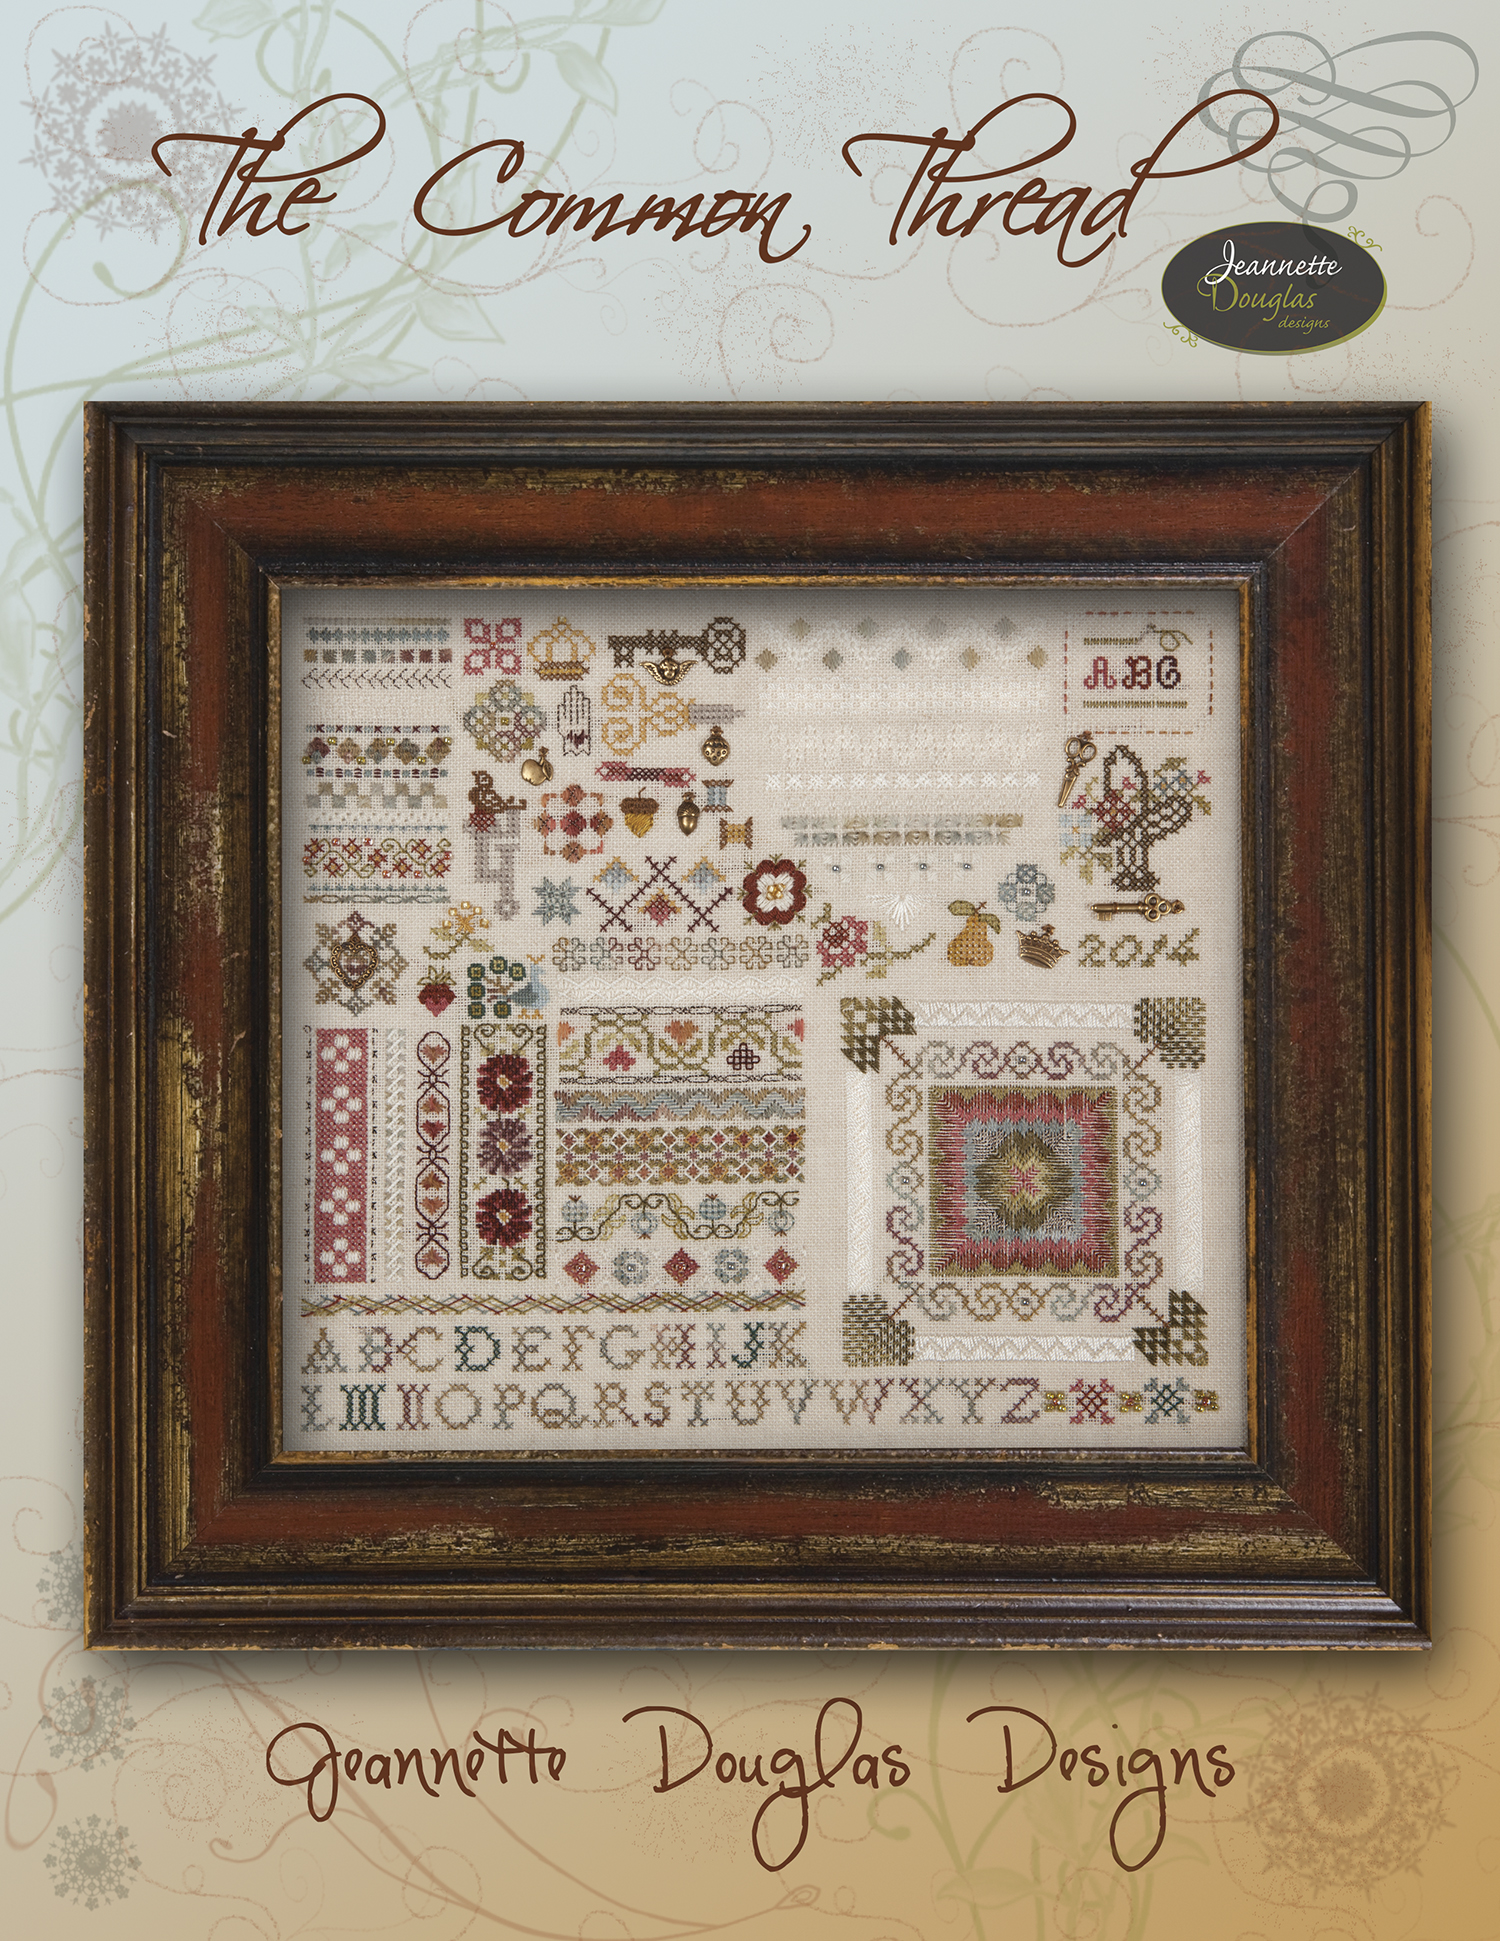 The Common Thread Sampler